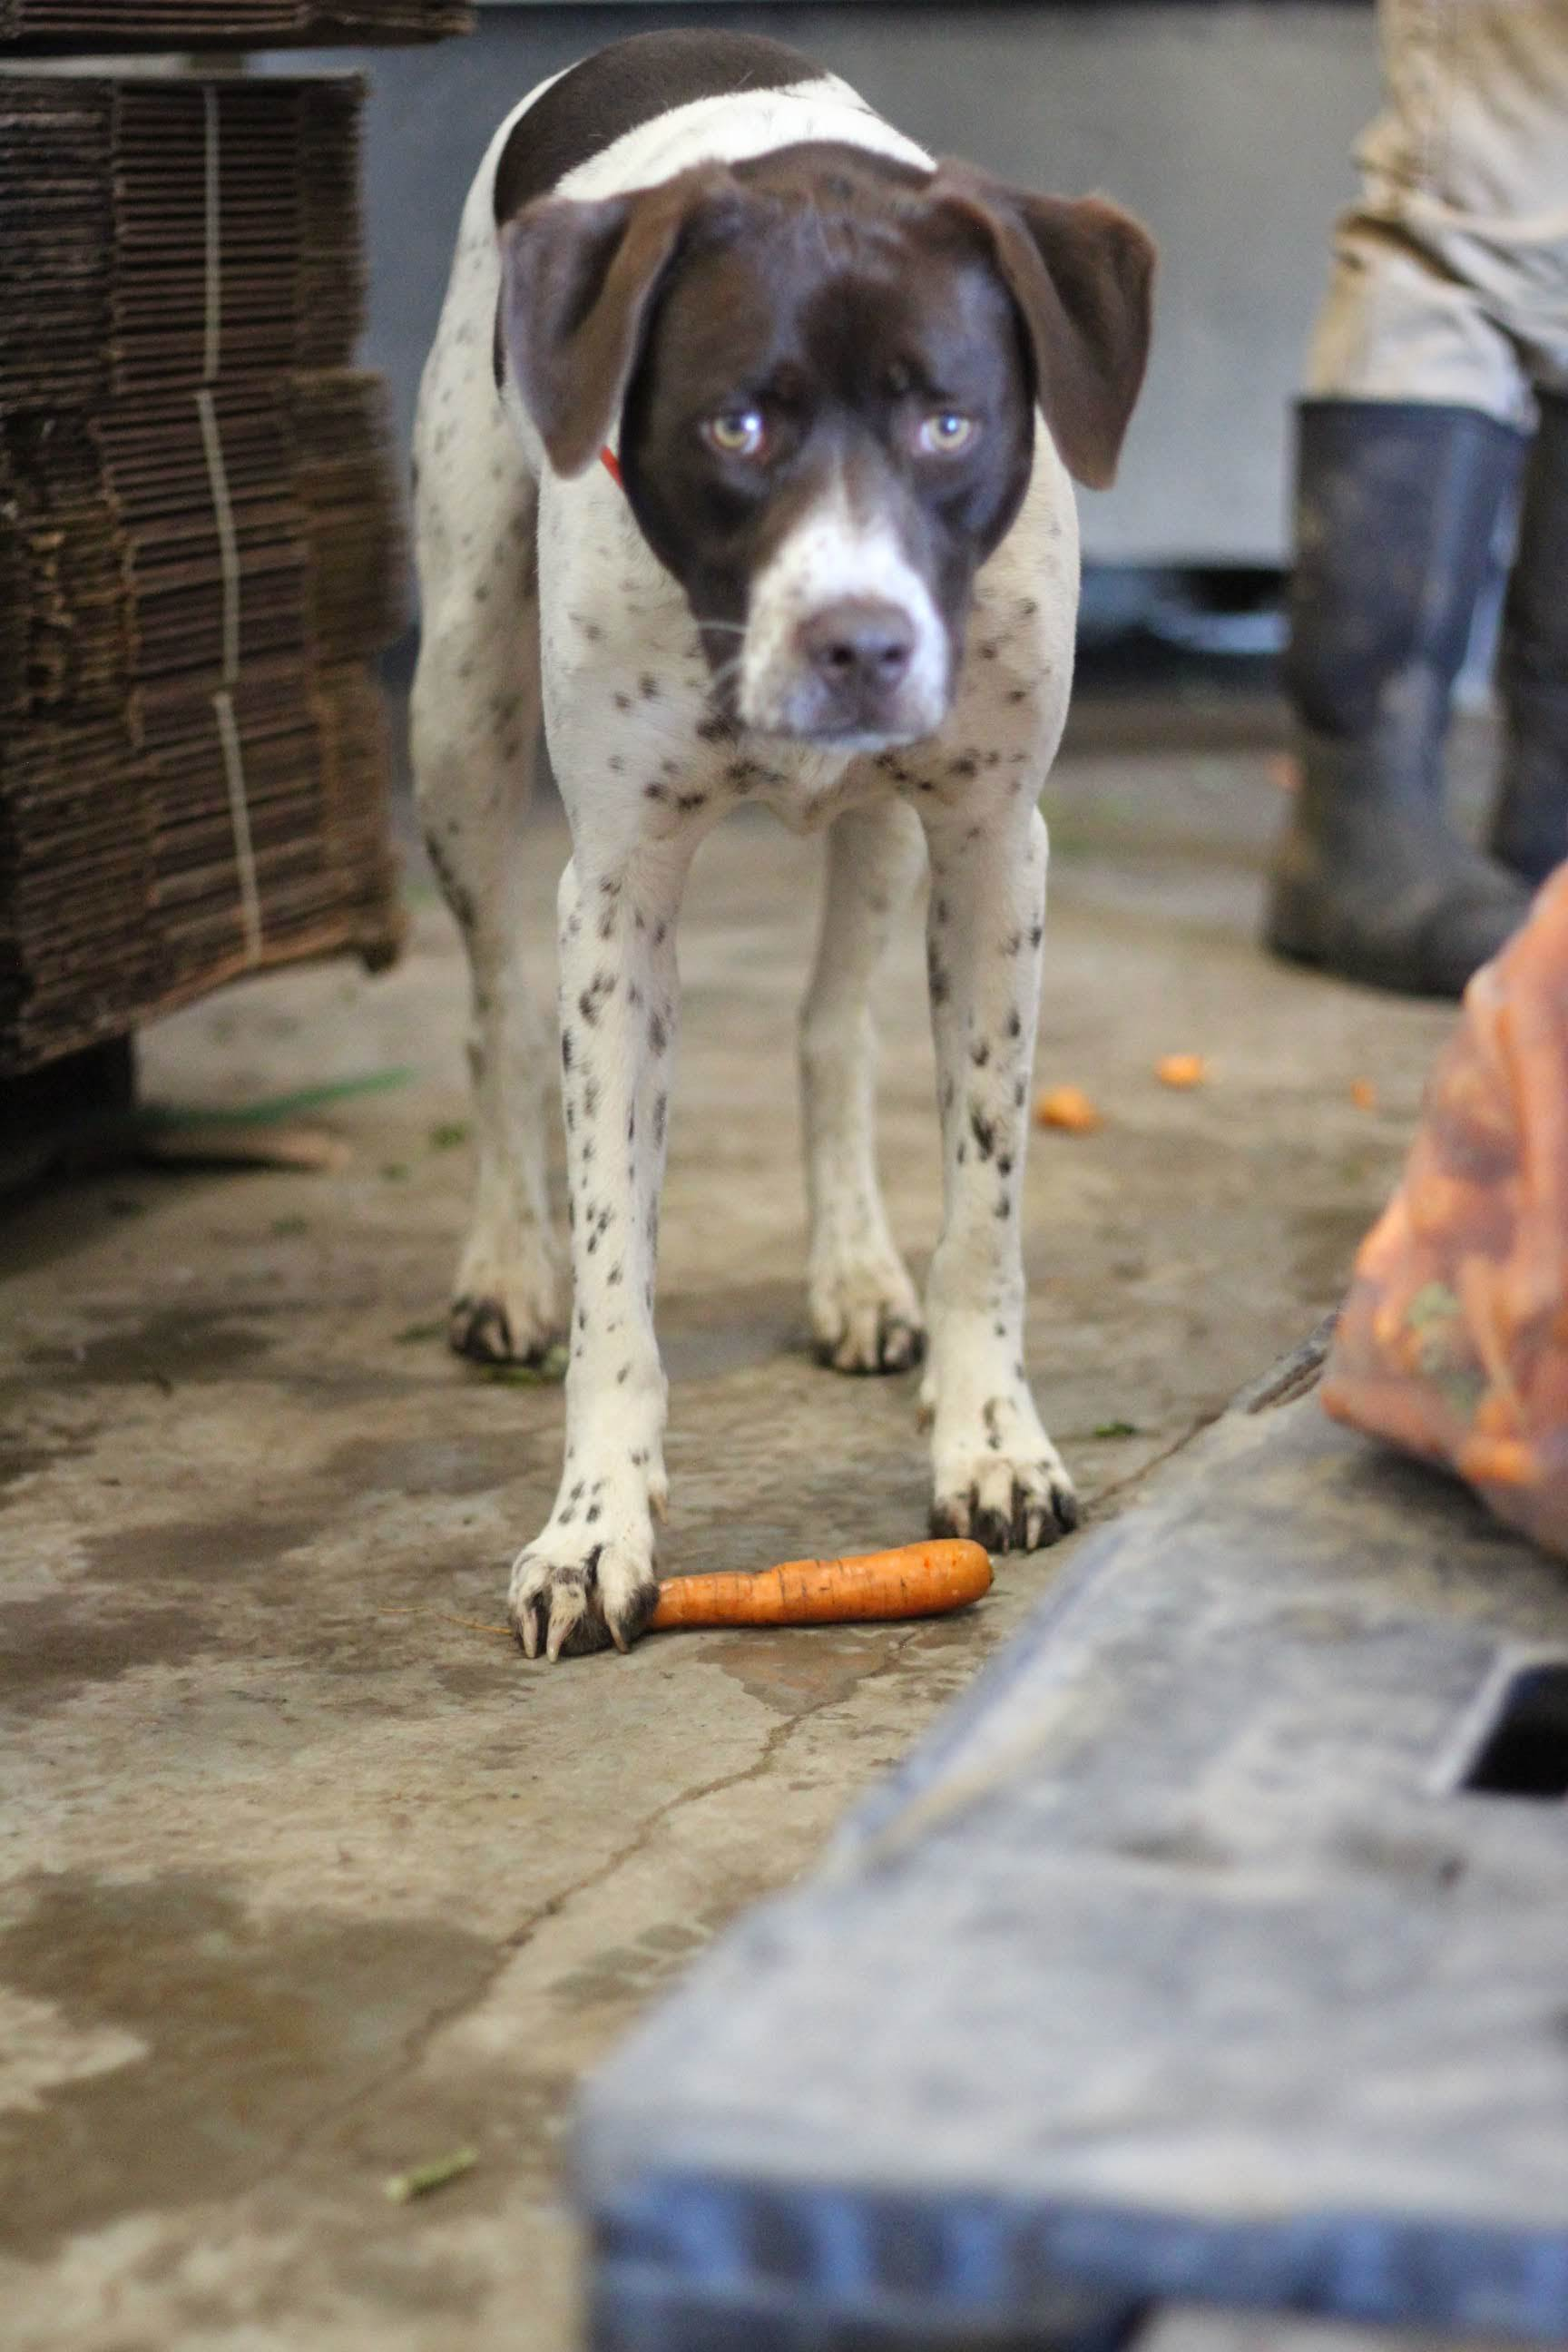 Did you know carrots make for a tasty and healthy treat for you pup?